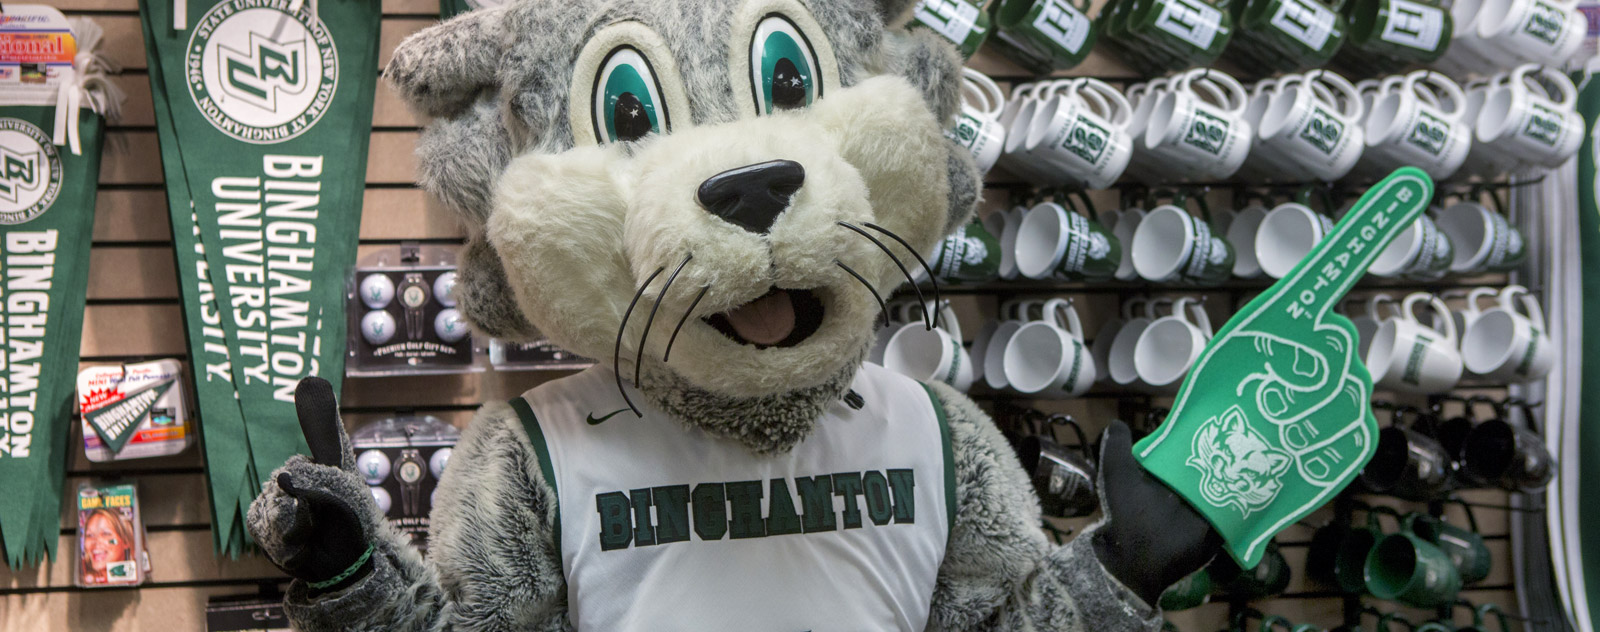 Baxter's Favorite Things  About Binghamton University